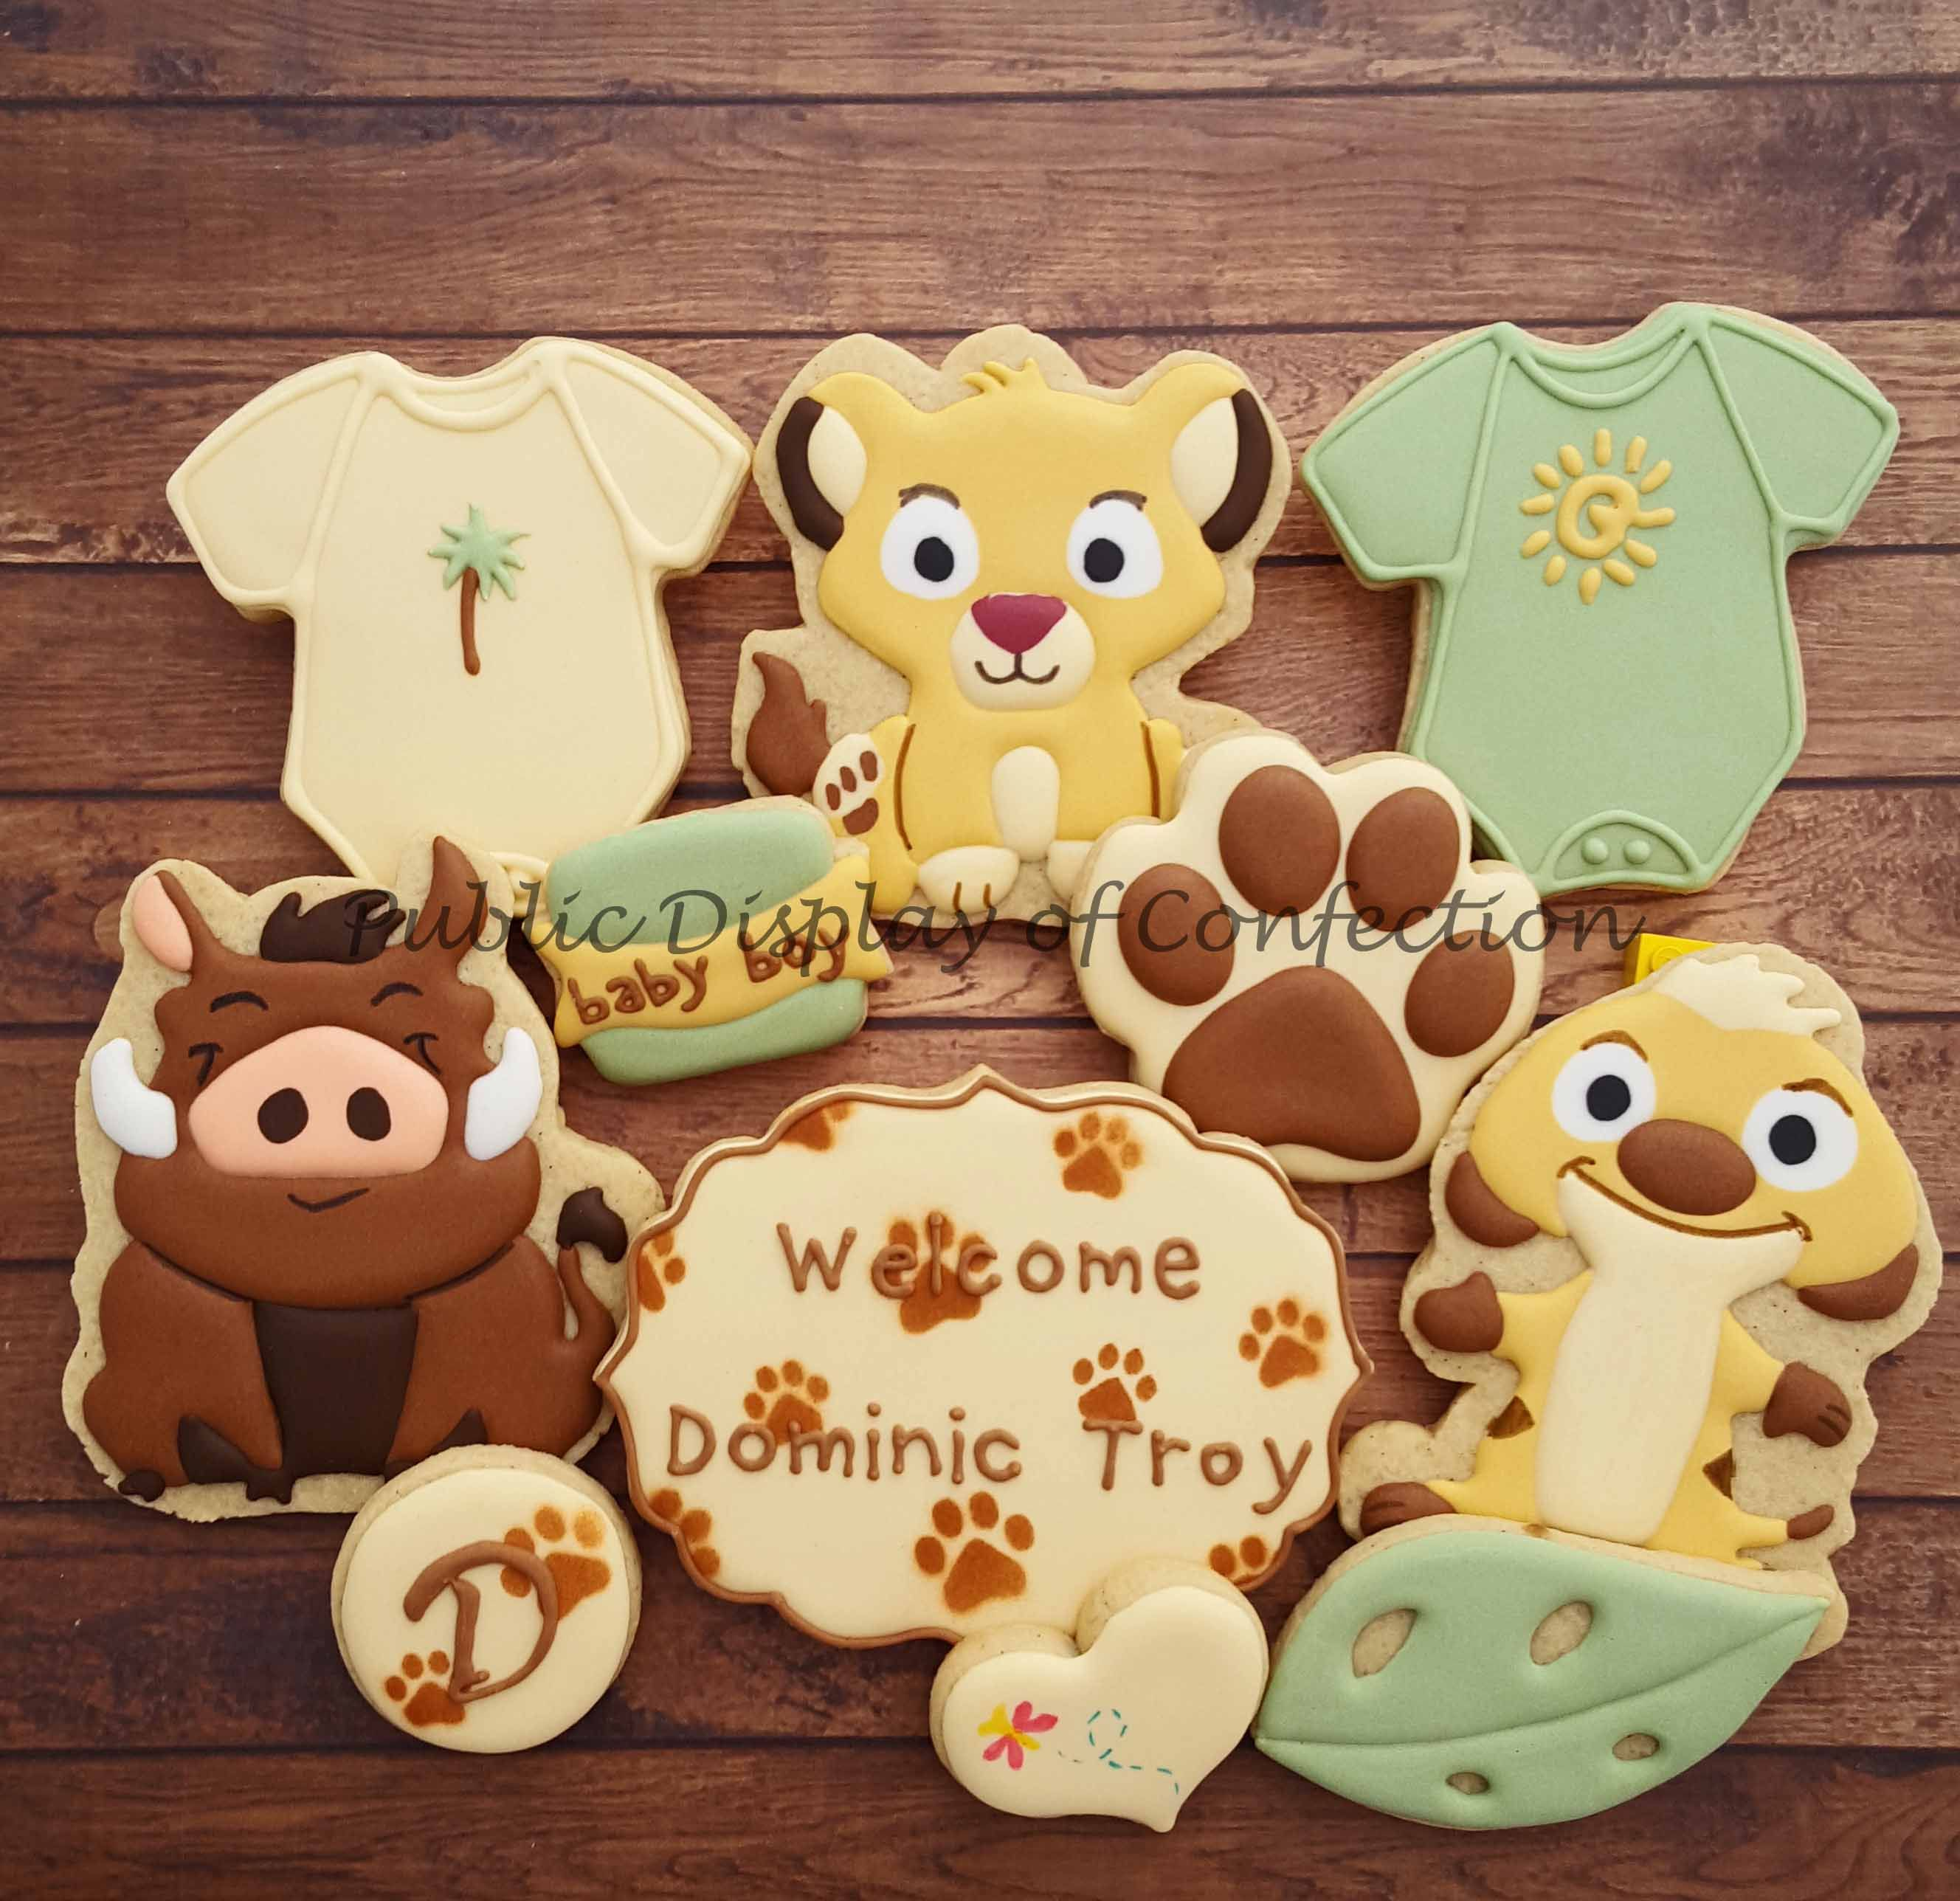 Baby Shower- Cookies- Lion King- Public Display Of